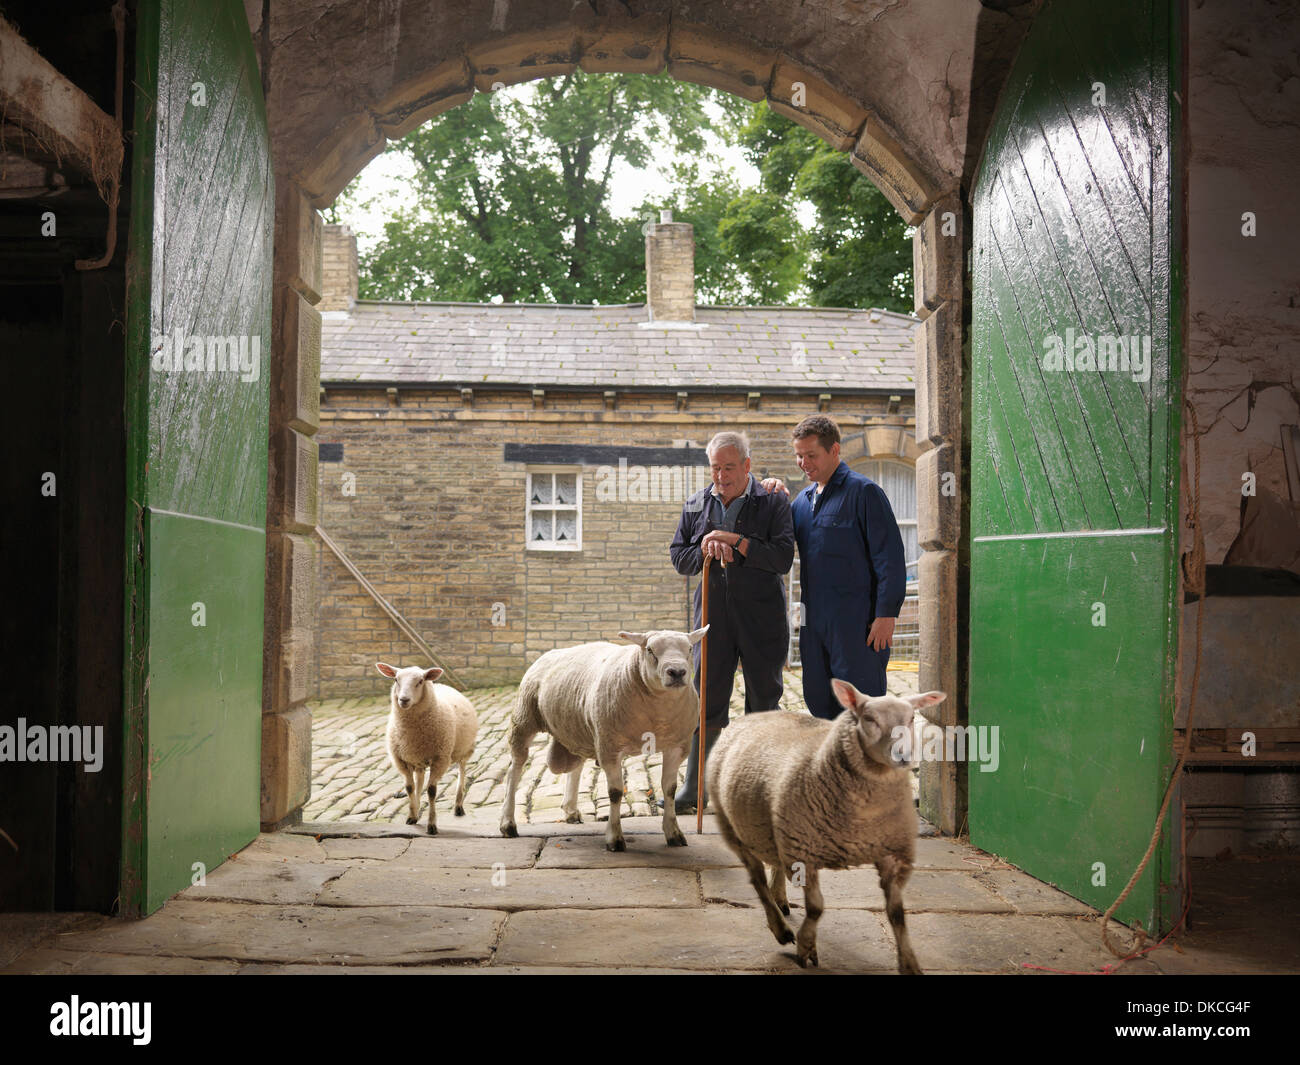 Farmer and son watching sheep enter old barn - Stock Image